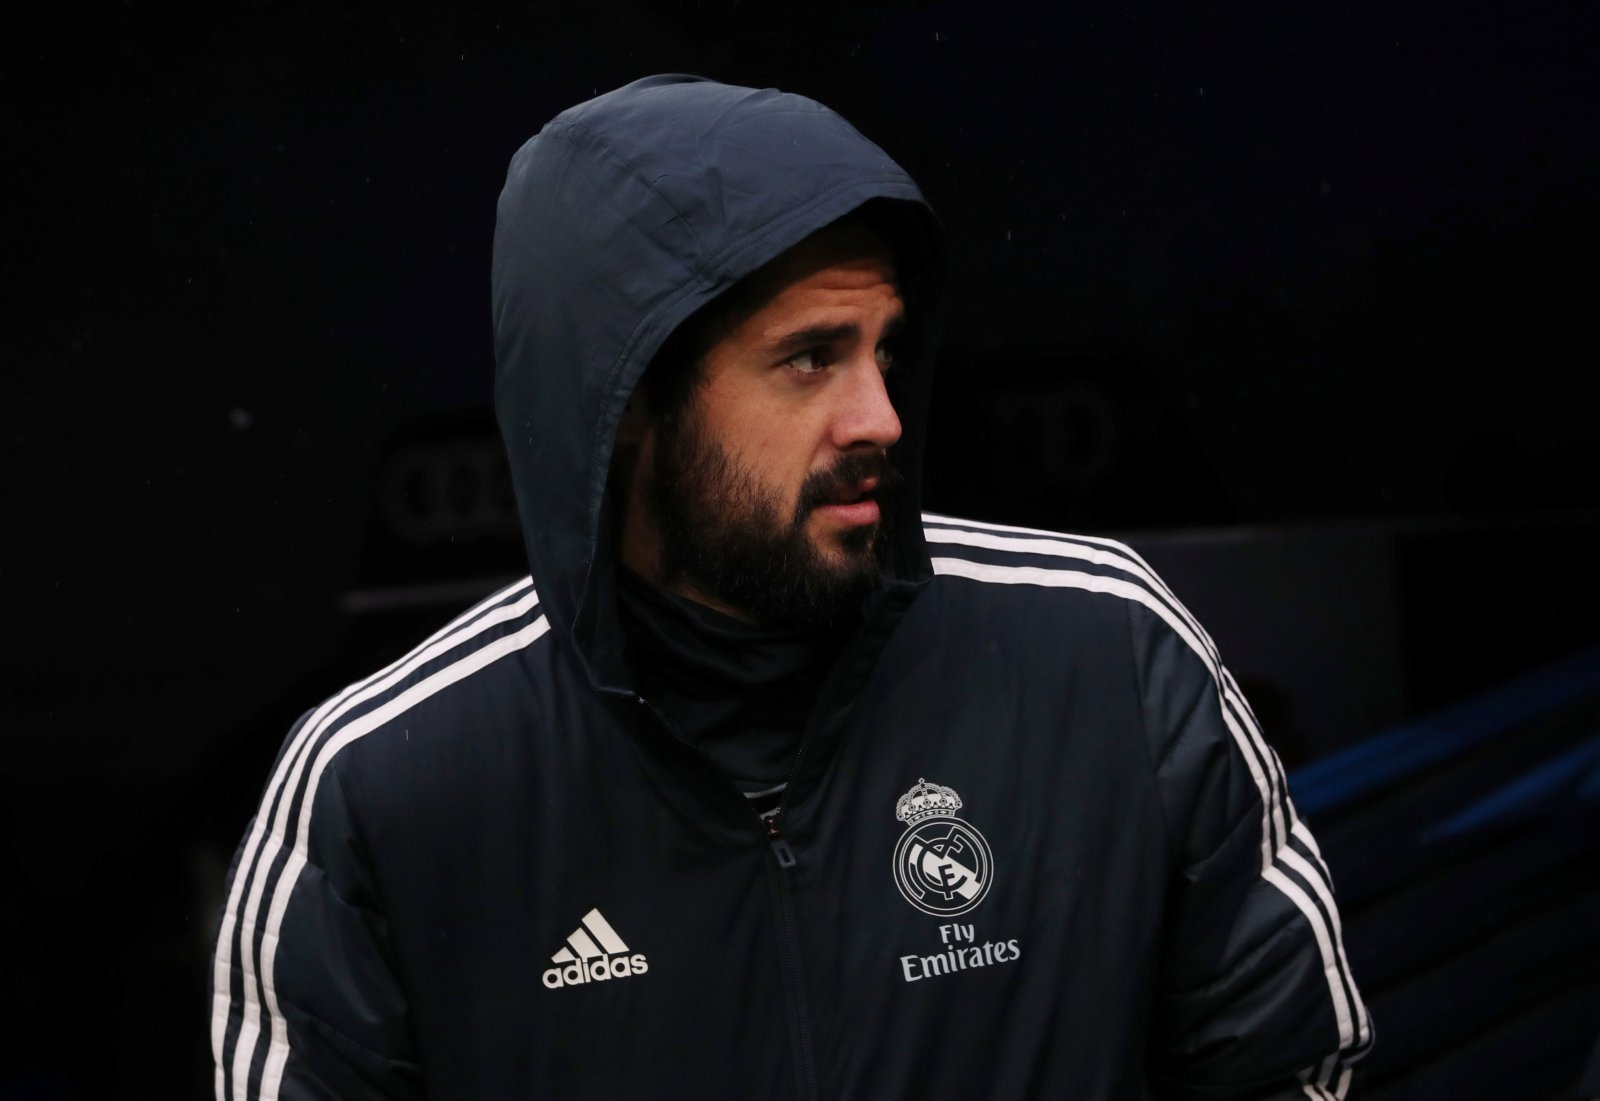 Potential consequences of signing Isco